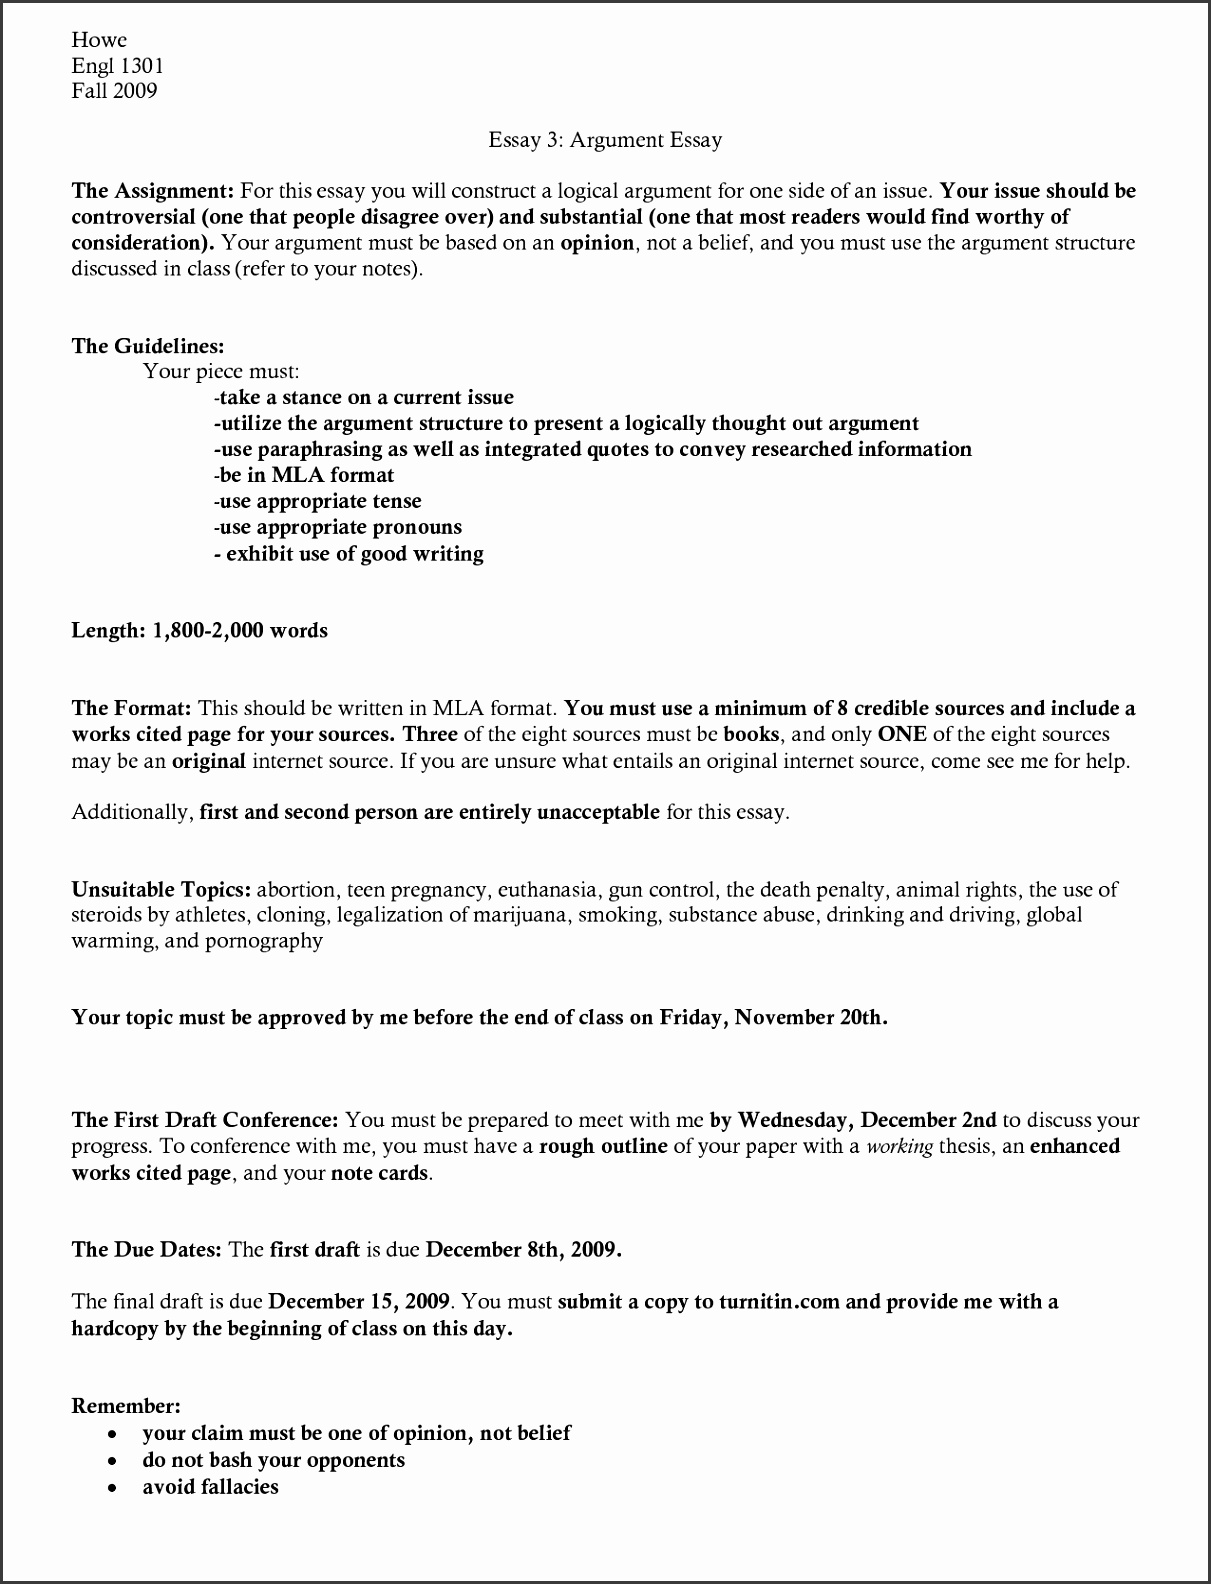 020 Mla Research Paper Template Uguco Best Of Persuasive Essay Formatyle Fteeo Outline For Formidable Format Style Sample Full